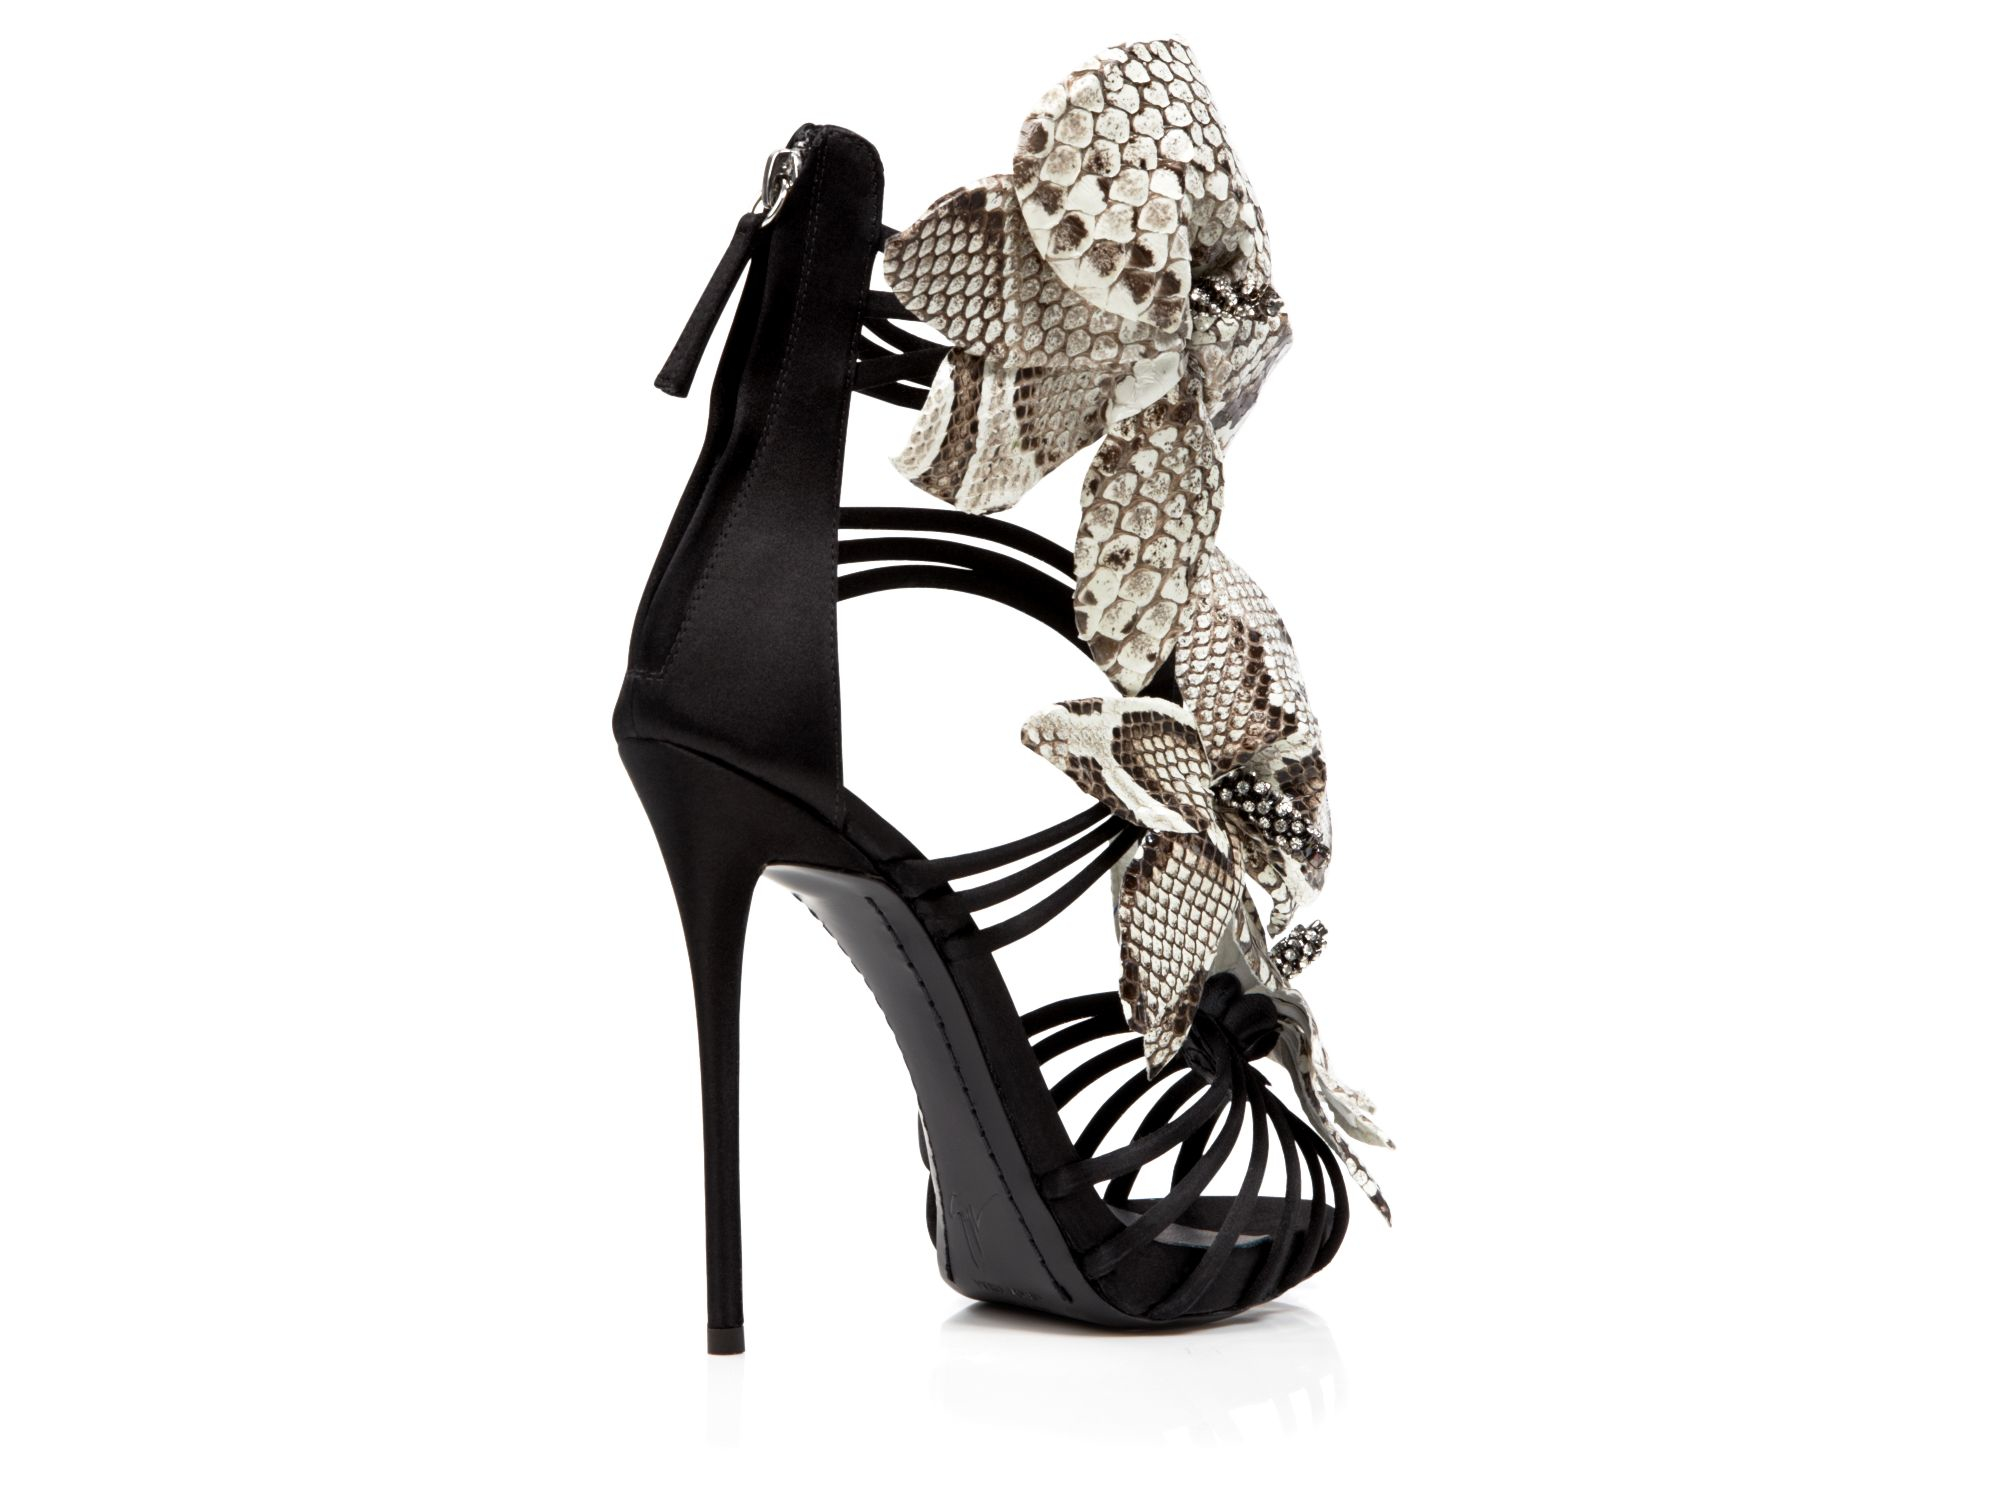 9252fec489f060 promo code for lyst giuseppe zanotti open toe platform evening sandals  coline ee266 a90cf